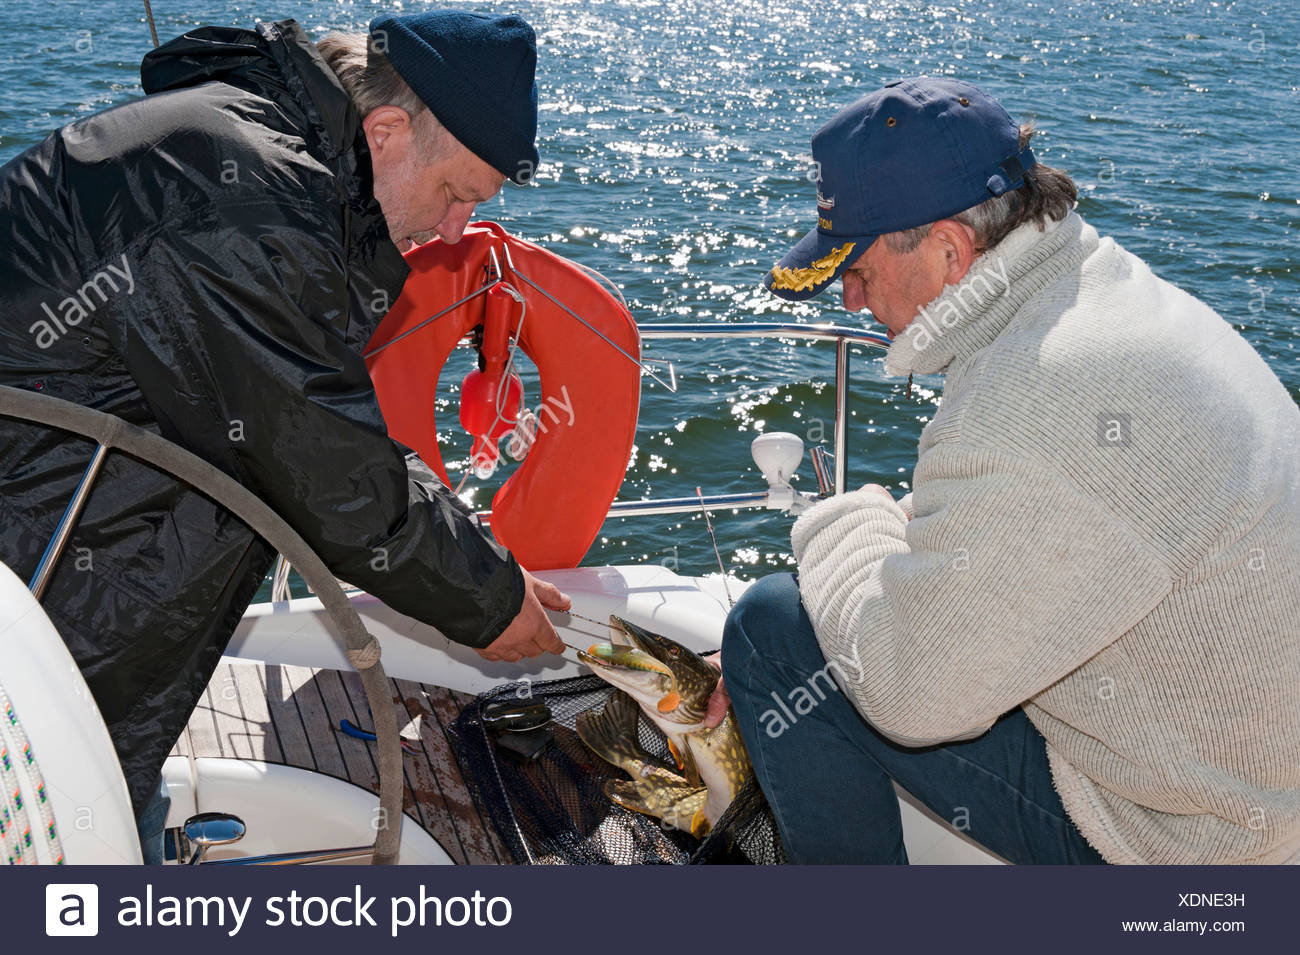 Deep-sea fishermen with a freshly caught pike, Baltic Sea, Germany, Europe - Stock Image